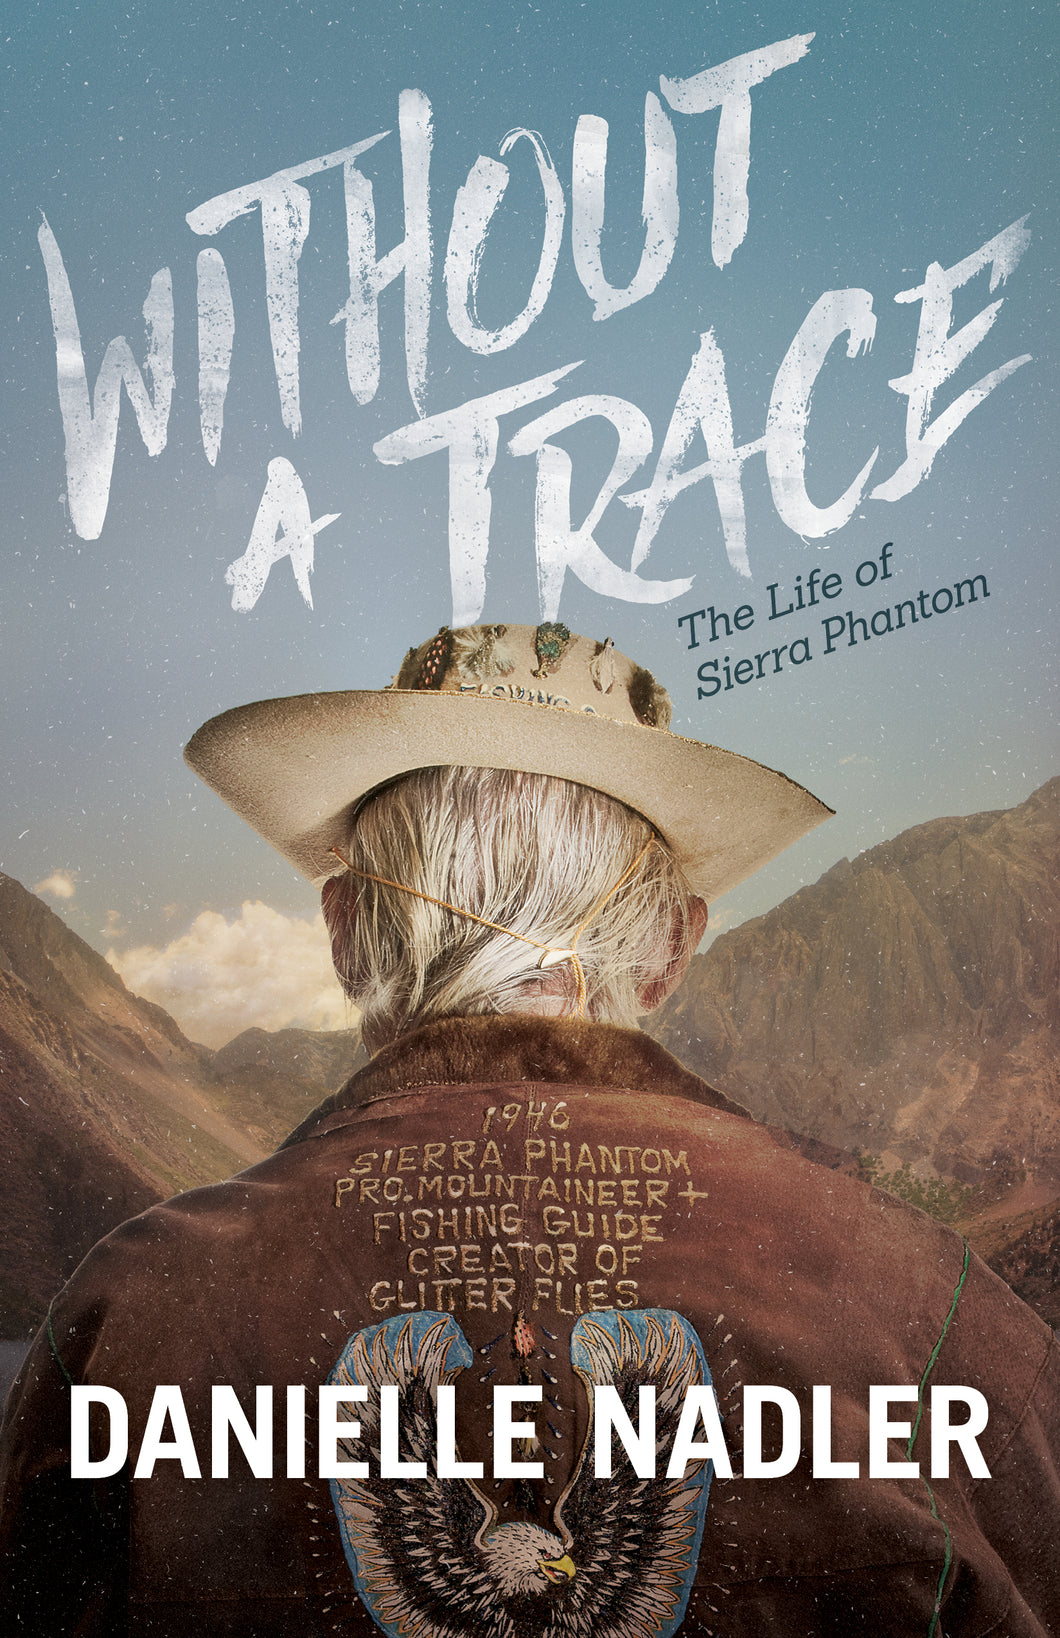 Without a Trace - The Life of Sierra Phantom By Danielle Nadler